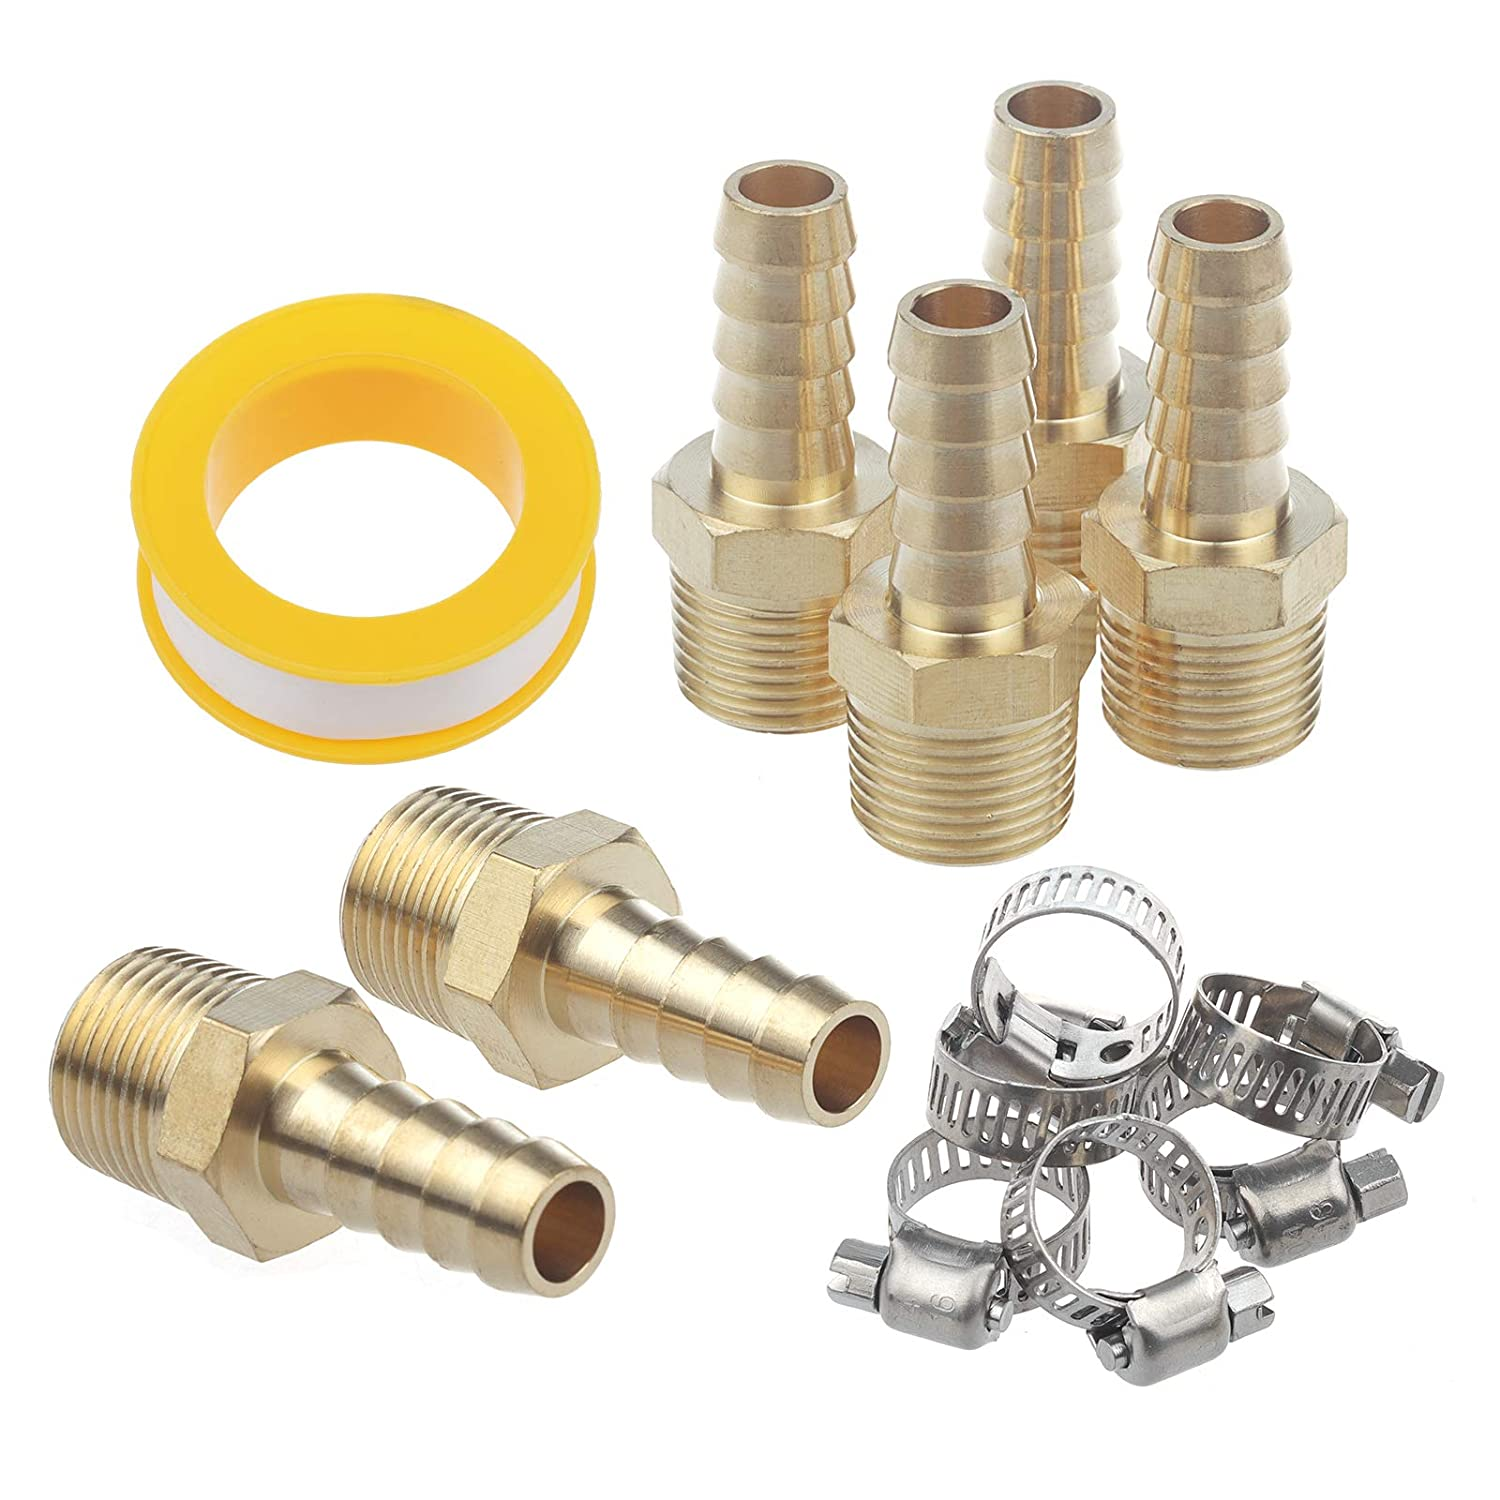 Jwodo Brass Air Hose Fittings 13Packs Water Fuel Pipe Compressor Hose Connectors with 6Pcs Hose Clamp and 1Pc Teflon Tape 6Packs 1//2 Barb to 1//2 NPT Male Thread Pipe Adapters